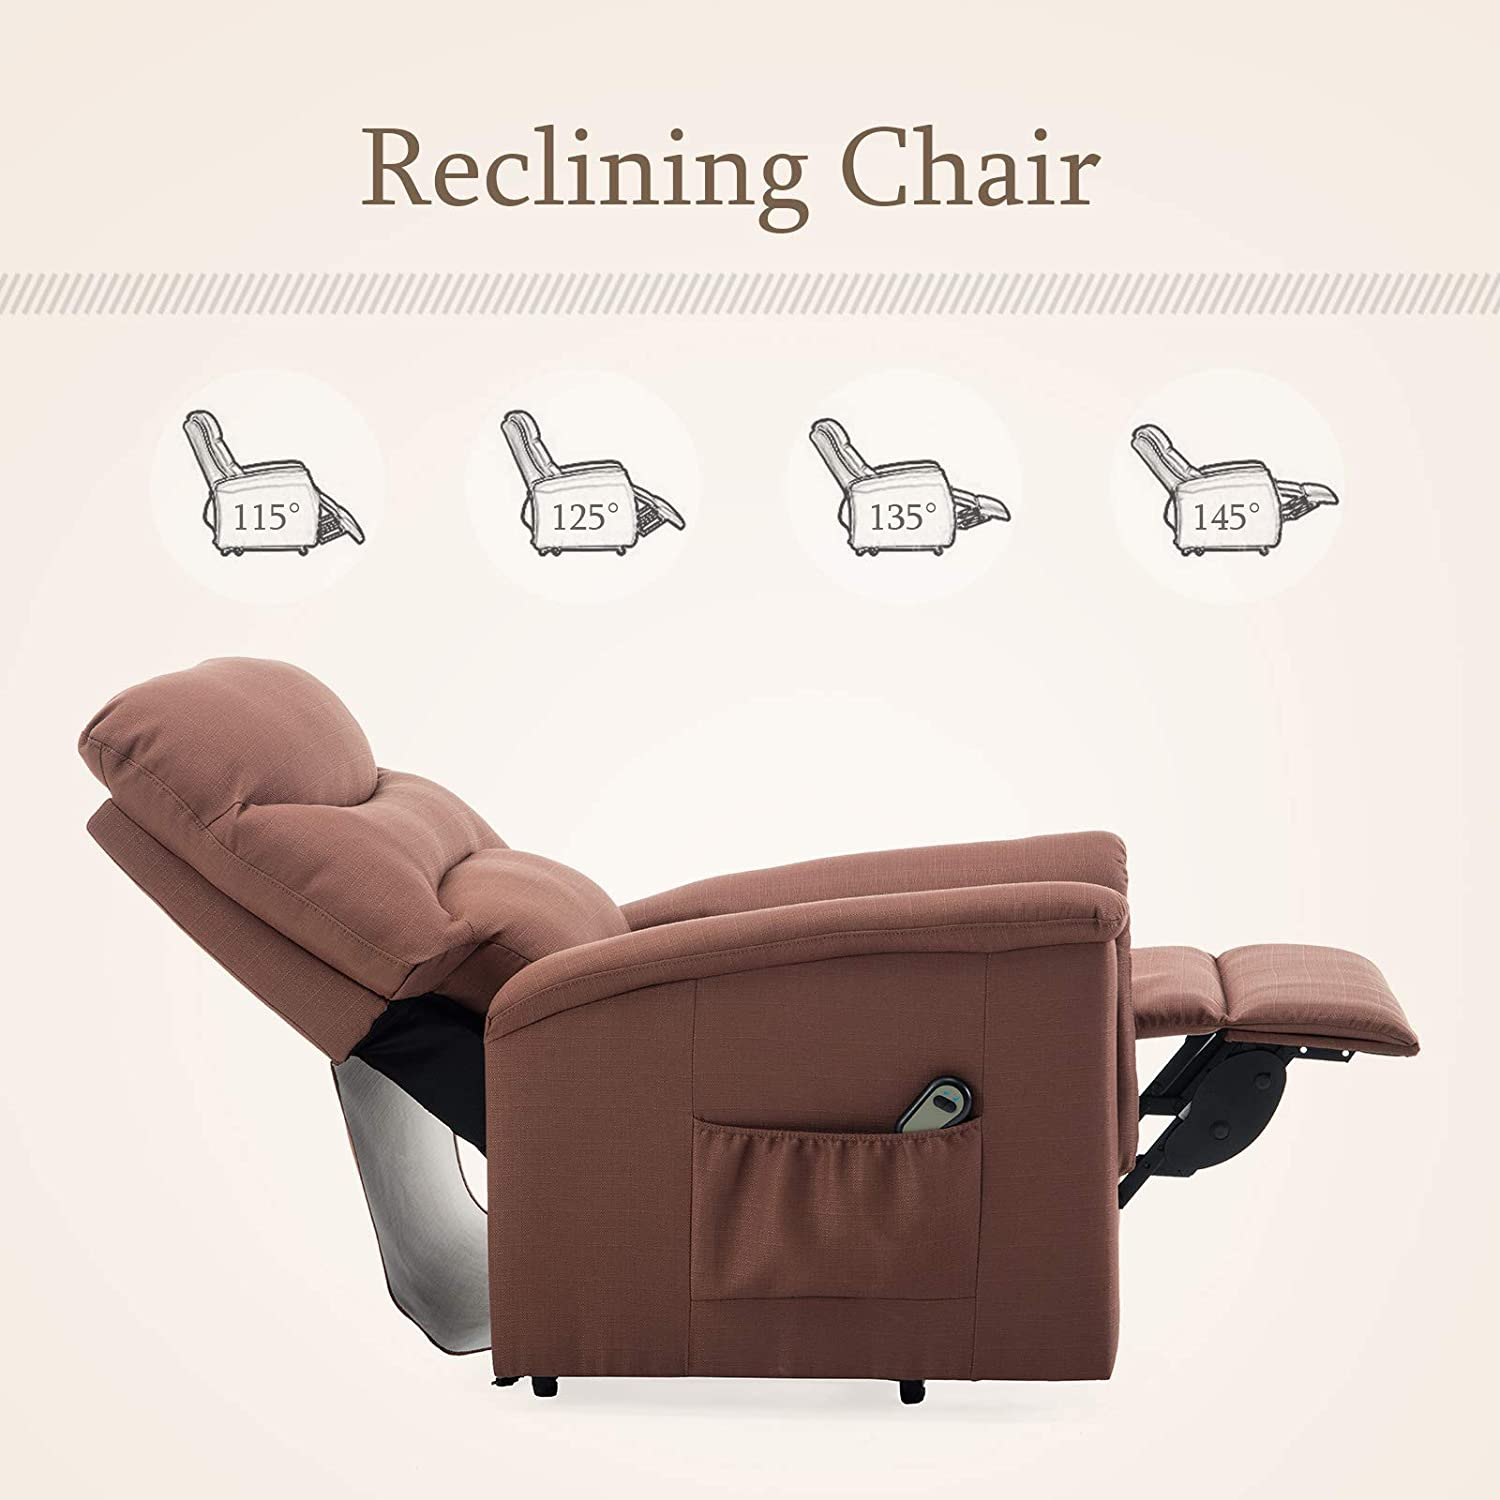 Mecor Power Lift Chair for Elderly Electric Lift Chair Recliner with Remote Control Fabric Recliner Chair Living Room Sofa Chair with Heavy Duty Reclining Mechanism